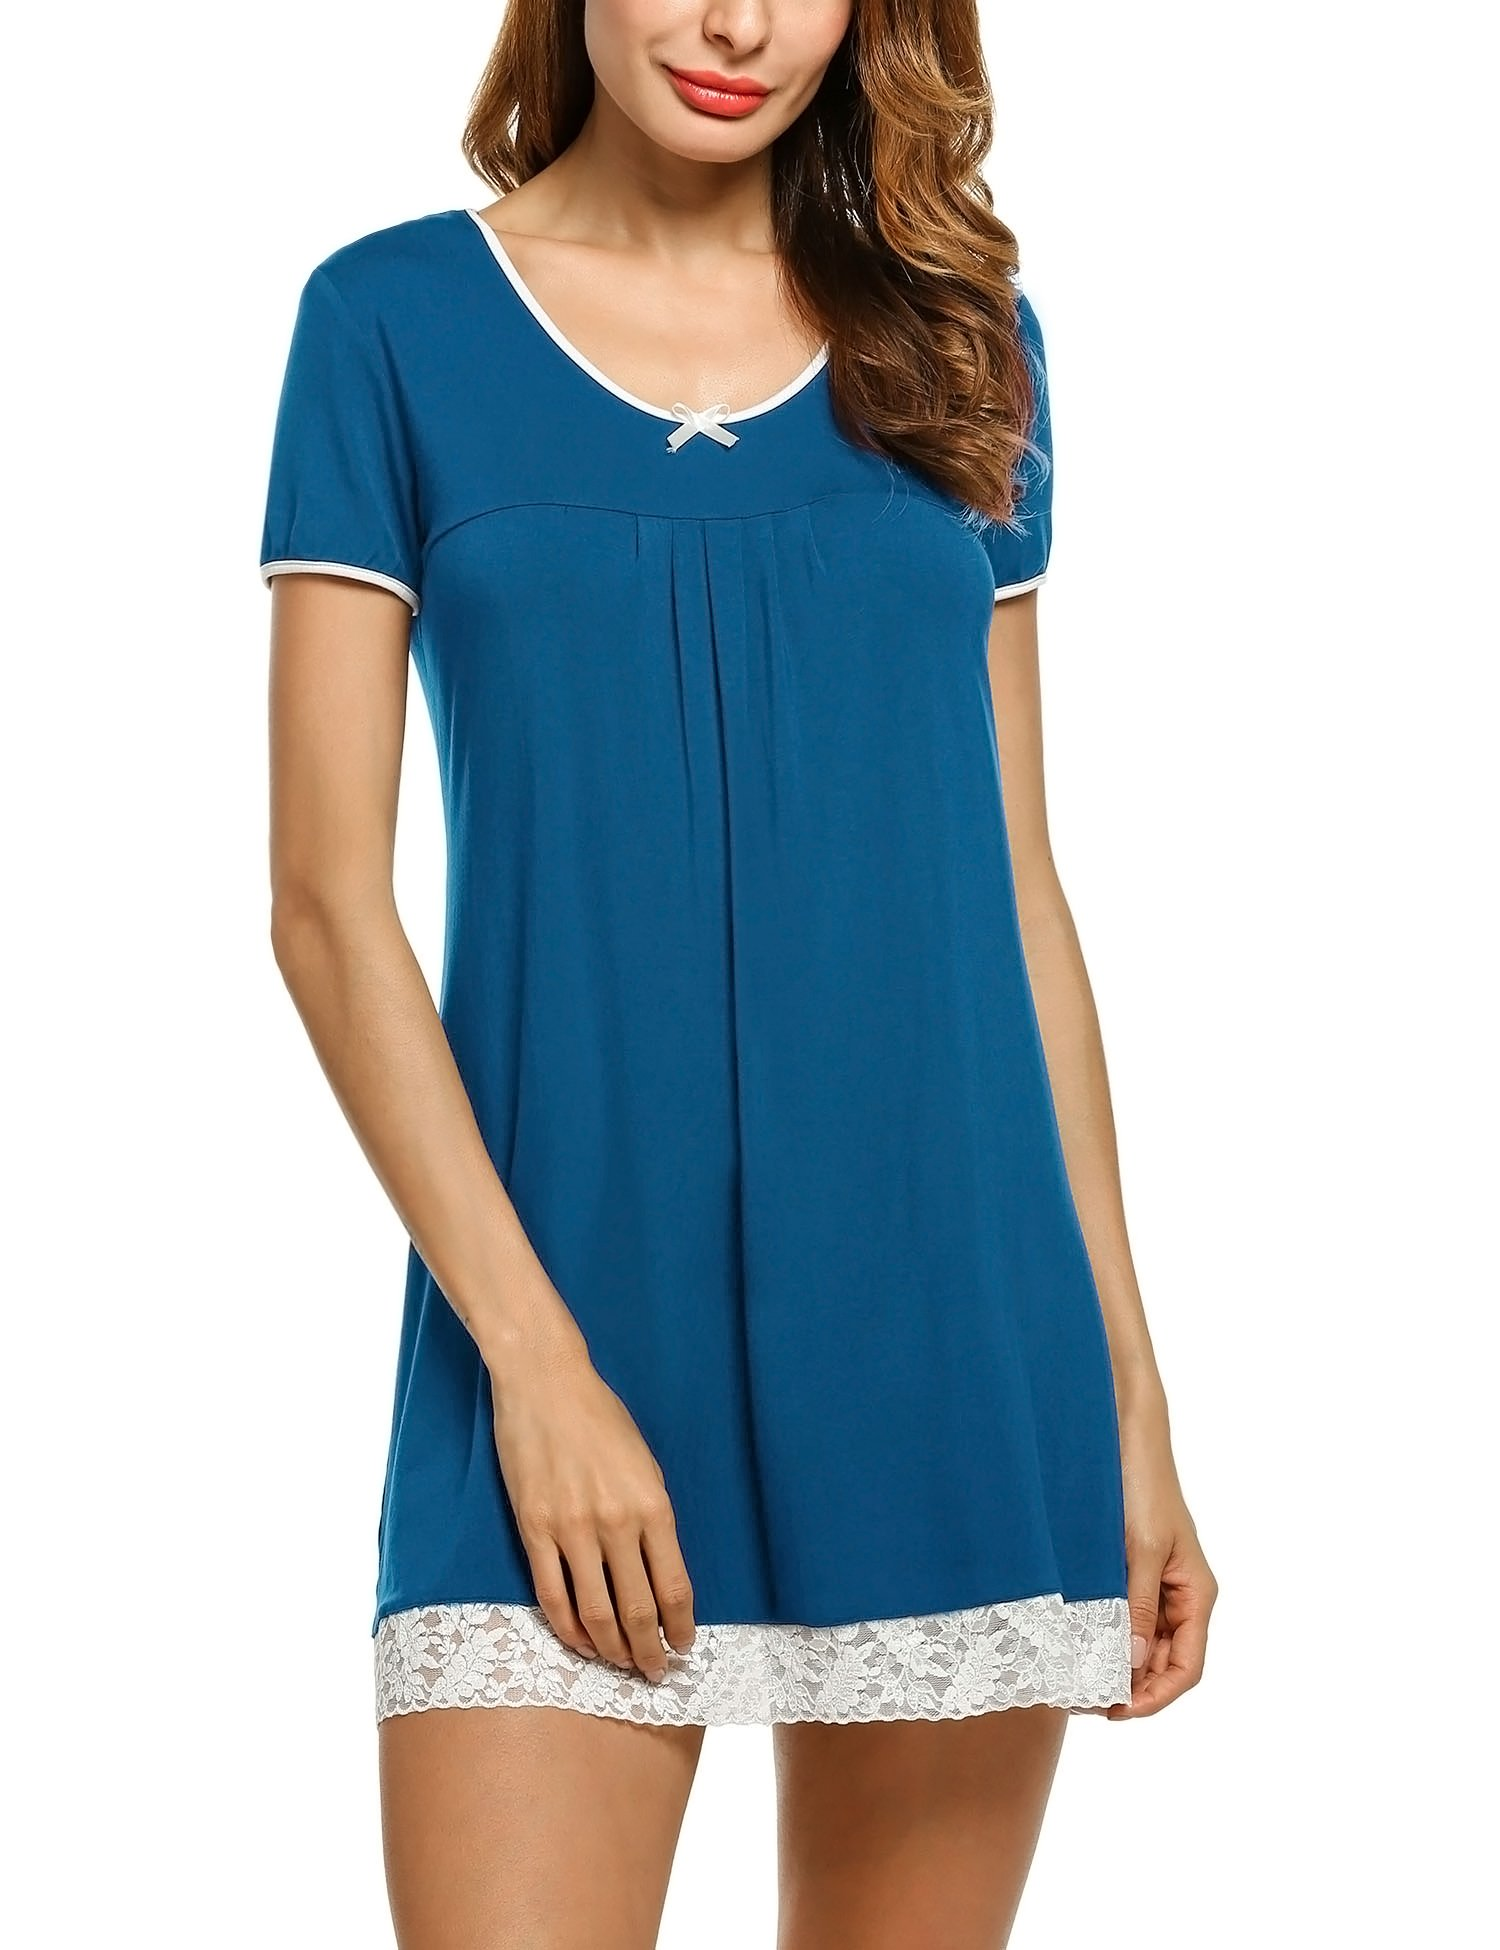 HOTOUCH Knitted Jersey Nightgown Woman Short Sleeve Night Shirts Peacock blue M